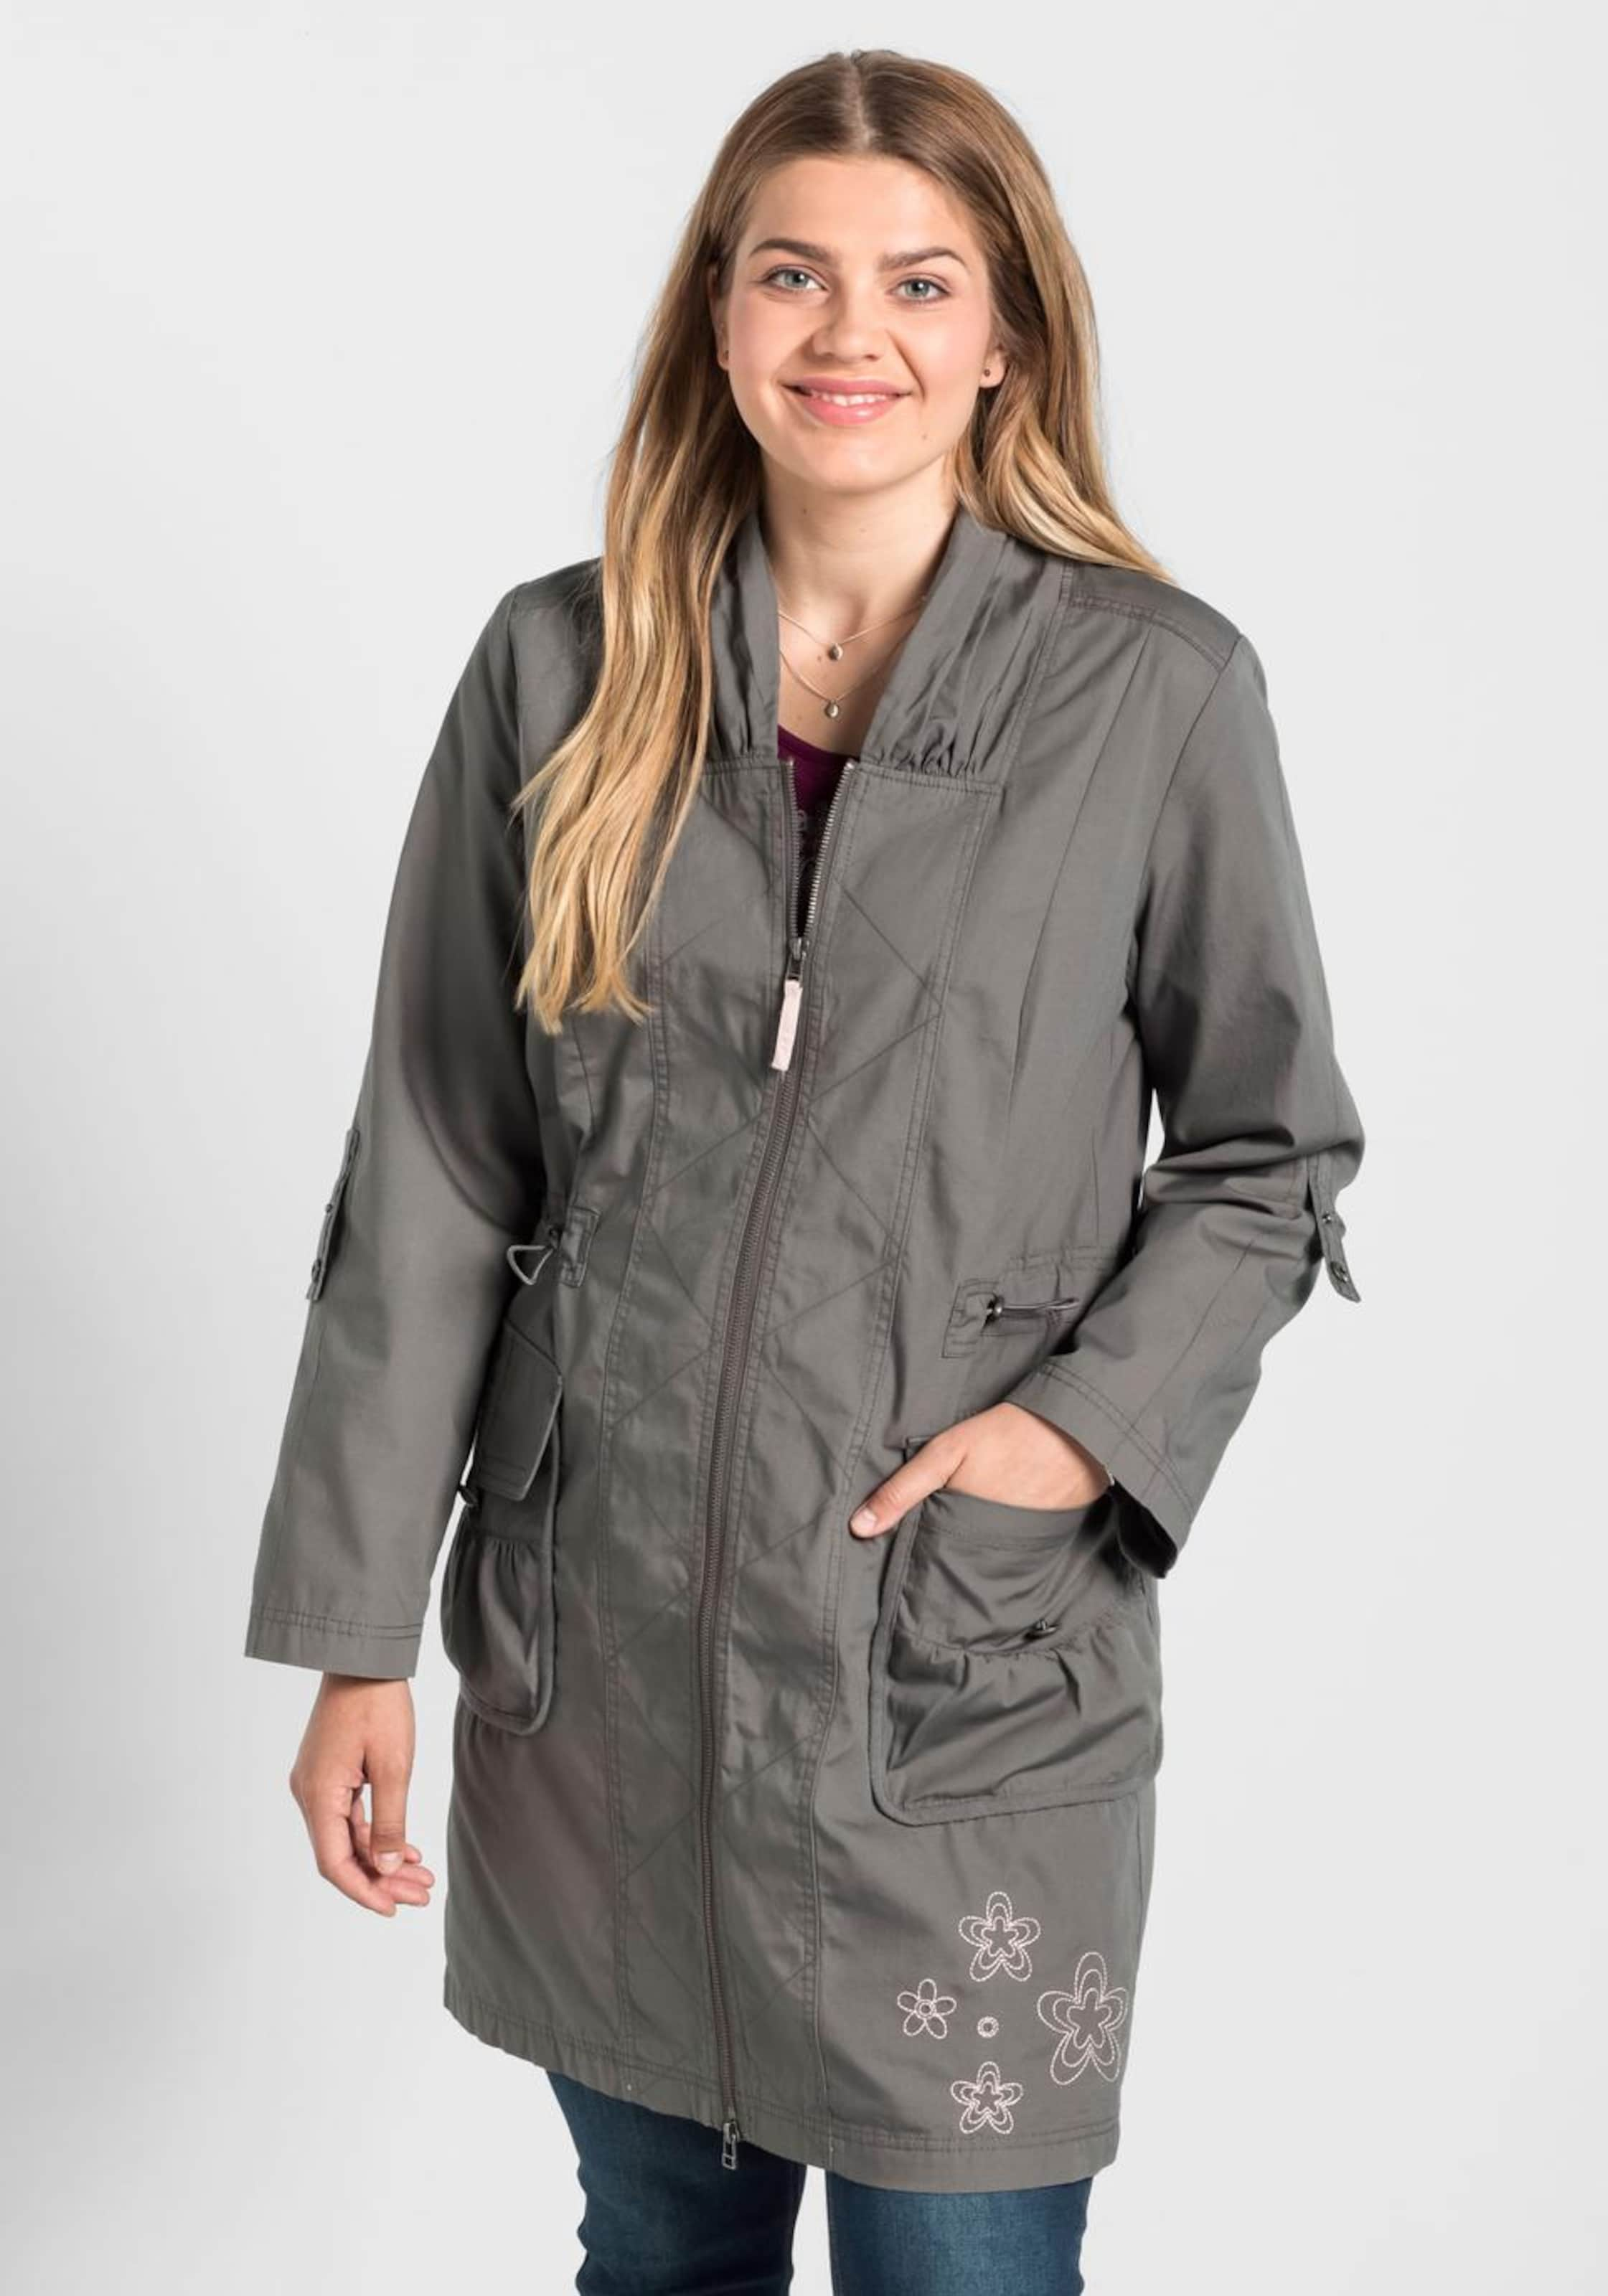 Outdoorjacke In Outdoorjacke Sheego Sheego Outdoorjacke In In Dunkelgrau Dunkelgrau Dunkelgrau Sheego D2WEIH9Y